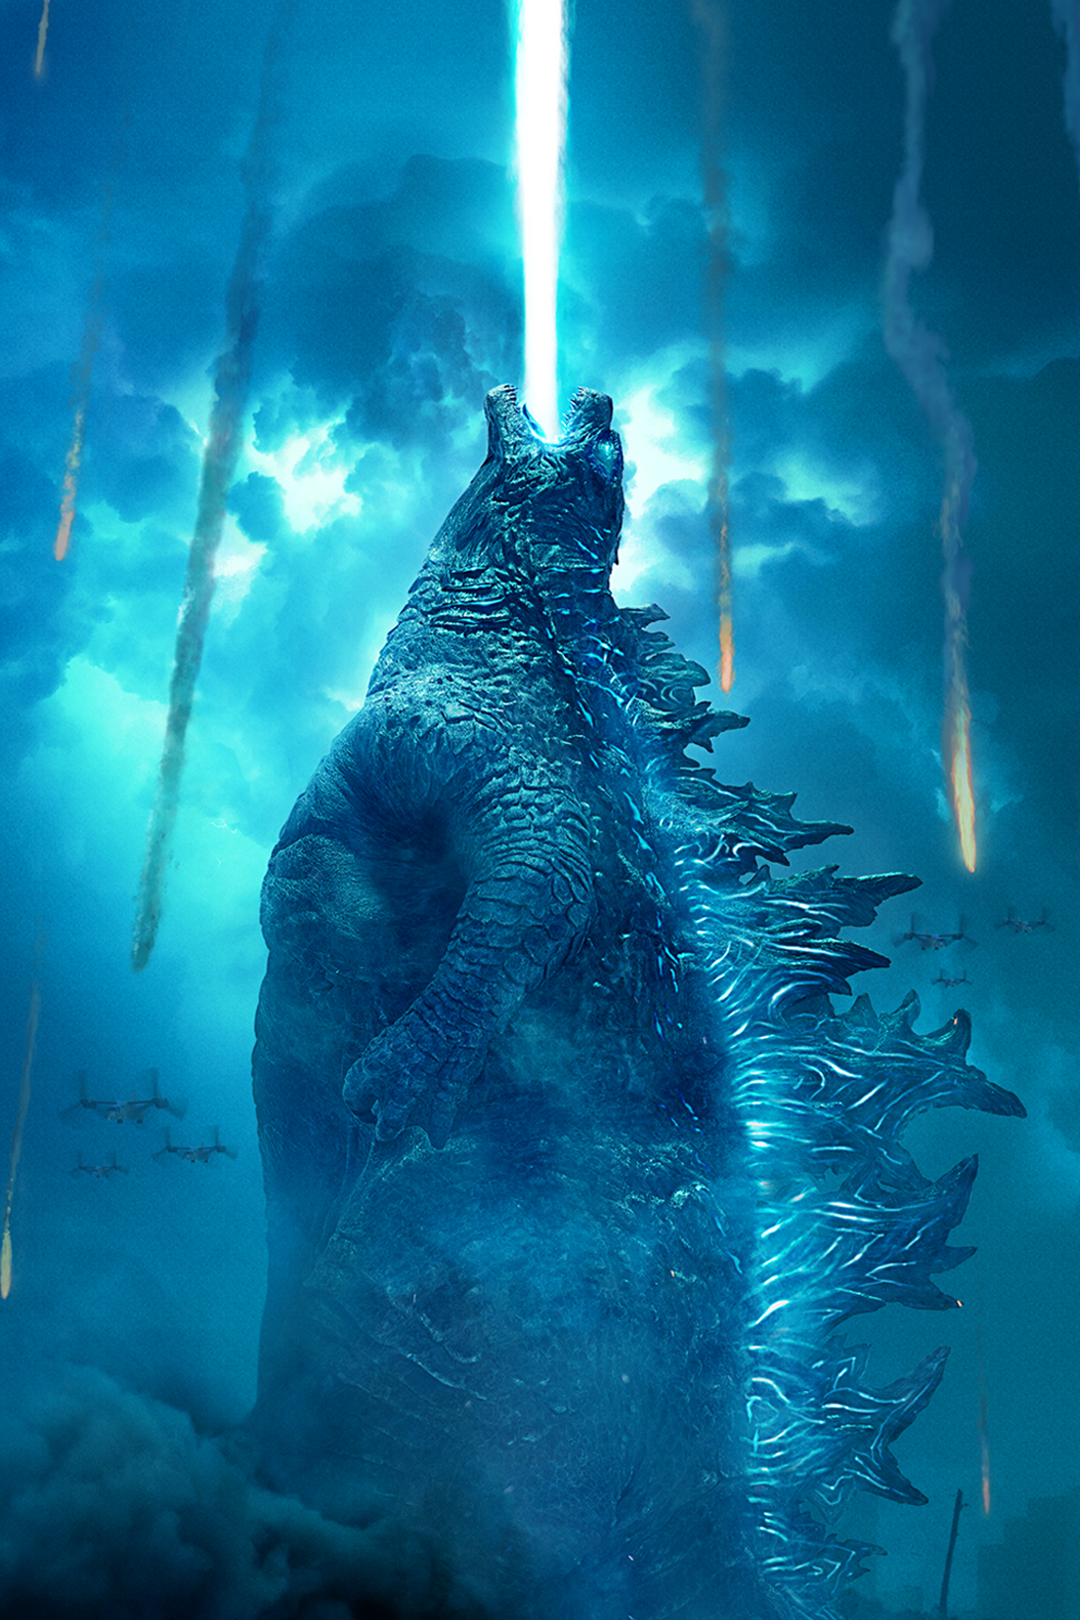 godzilla-king-of-the-monsters-ka-1080.jpg